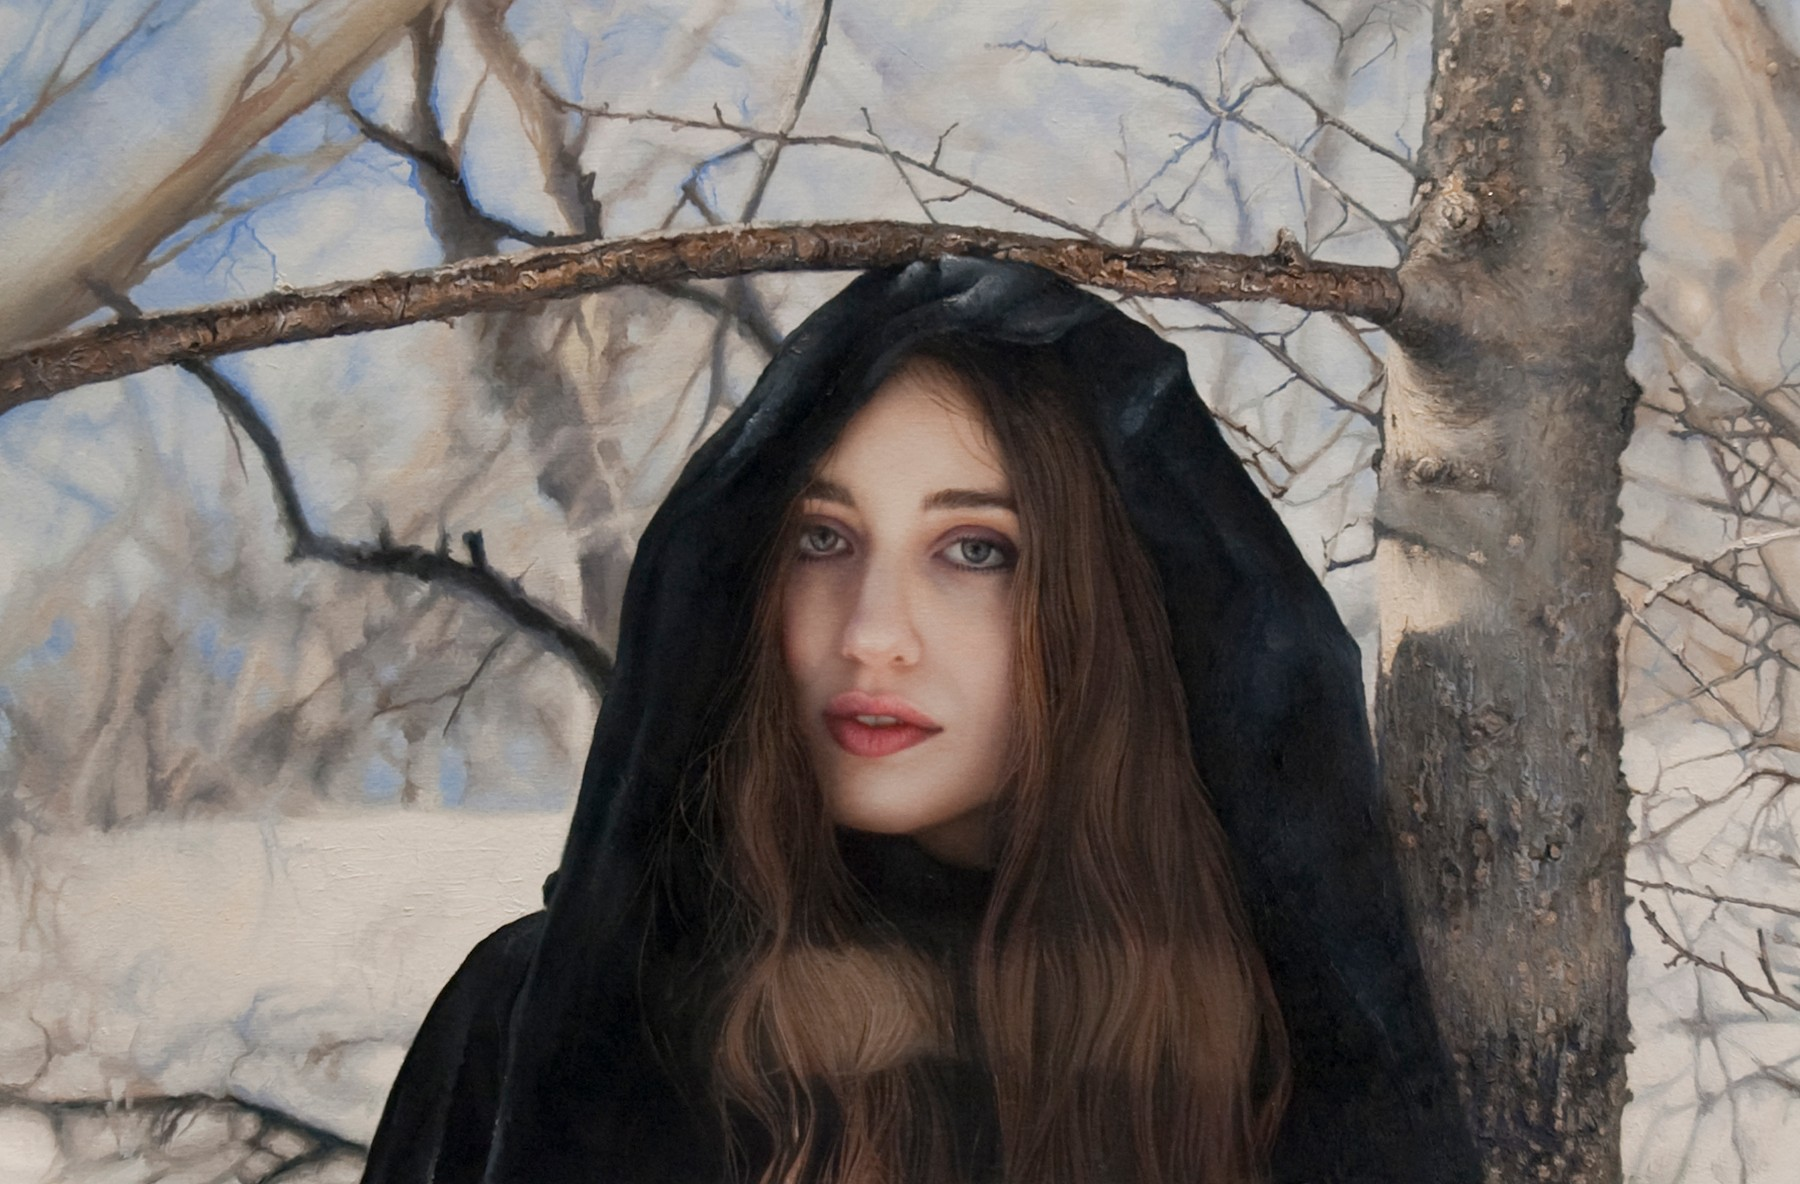 Untitled; Lizzie in the snow, 12 x 18 inches, Oil on paper mounted on wood, 2010 (12) (d) - 2